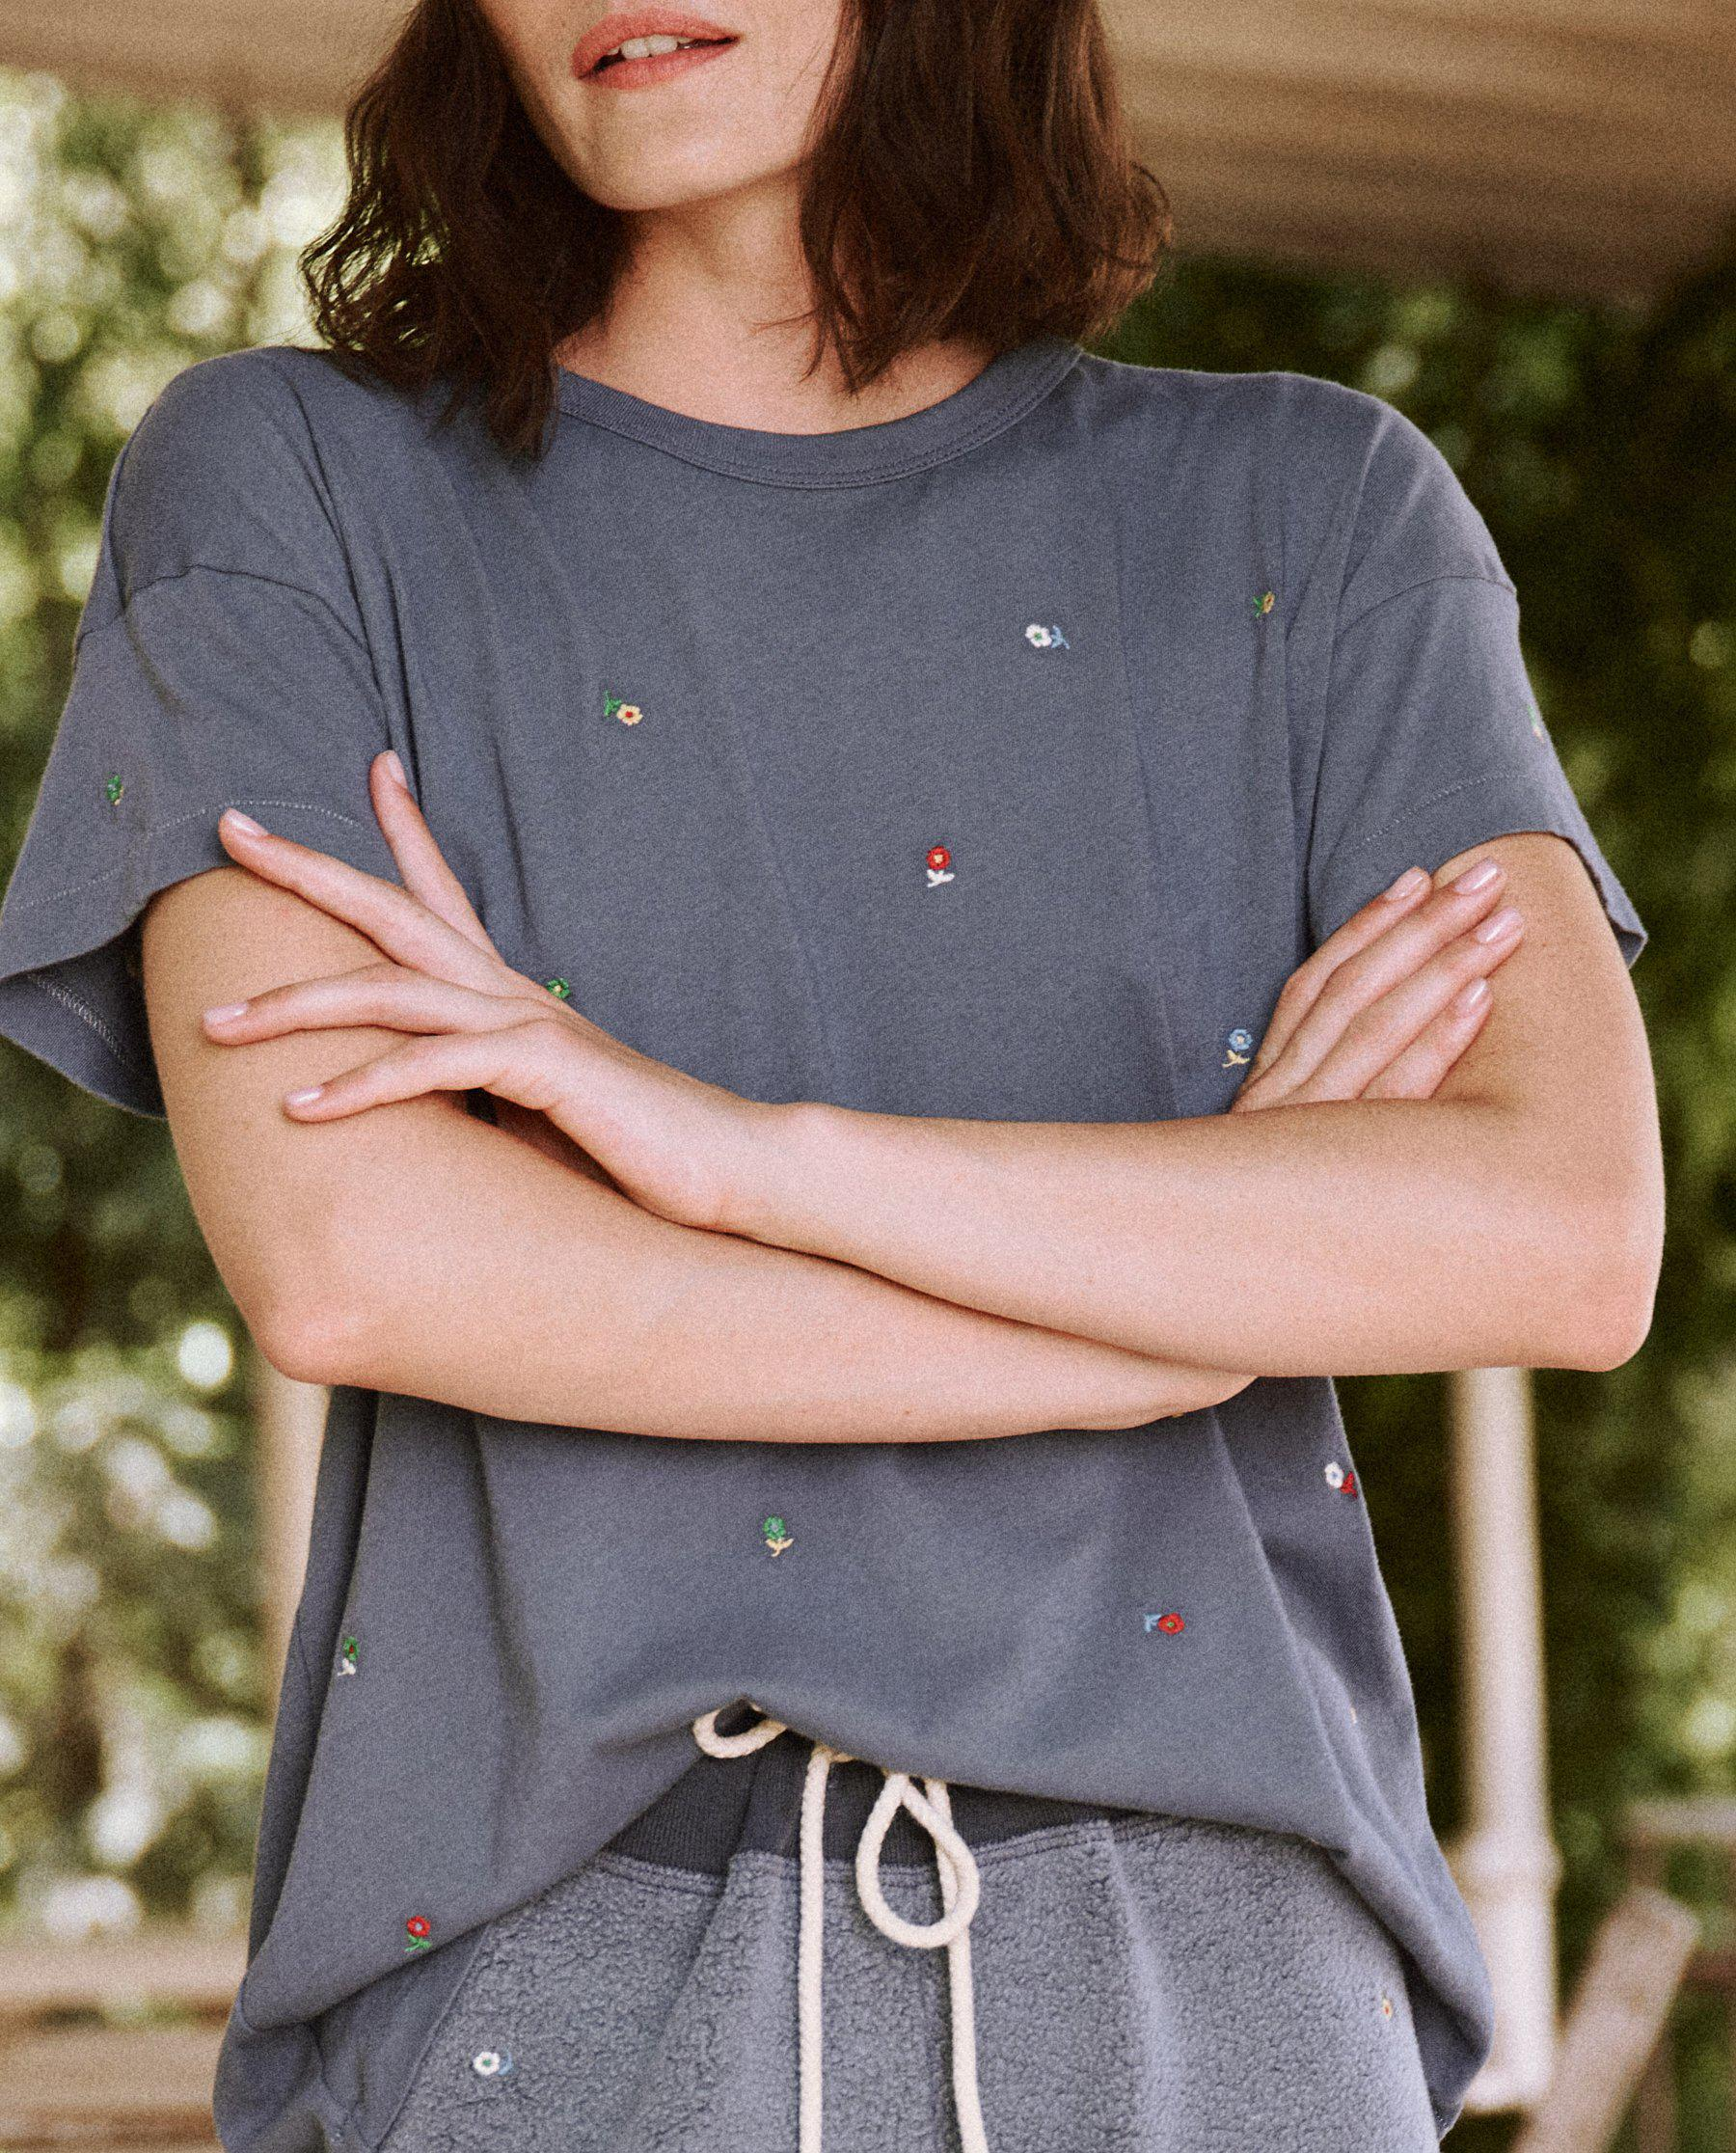 The Boxy Crew. Embroidered -- Vintage Navy with Ditsy Floral Embroidery